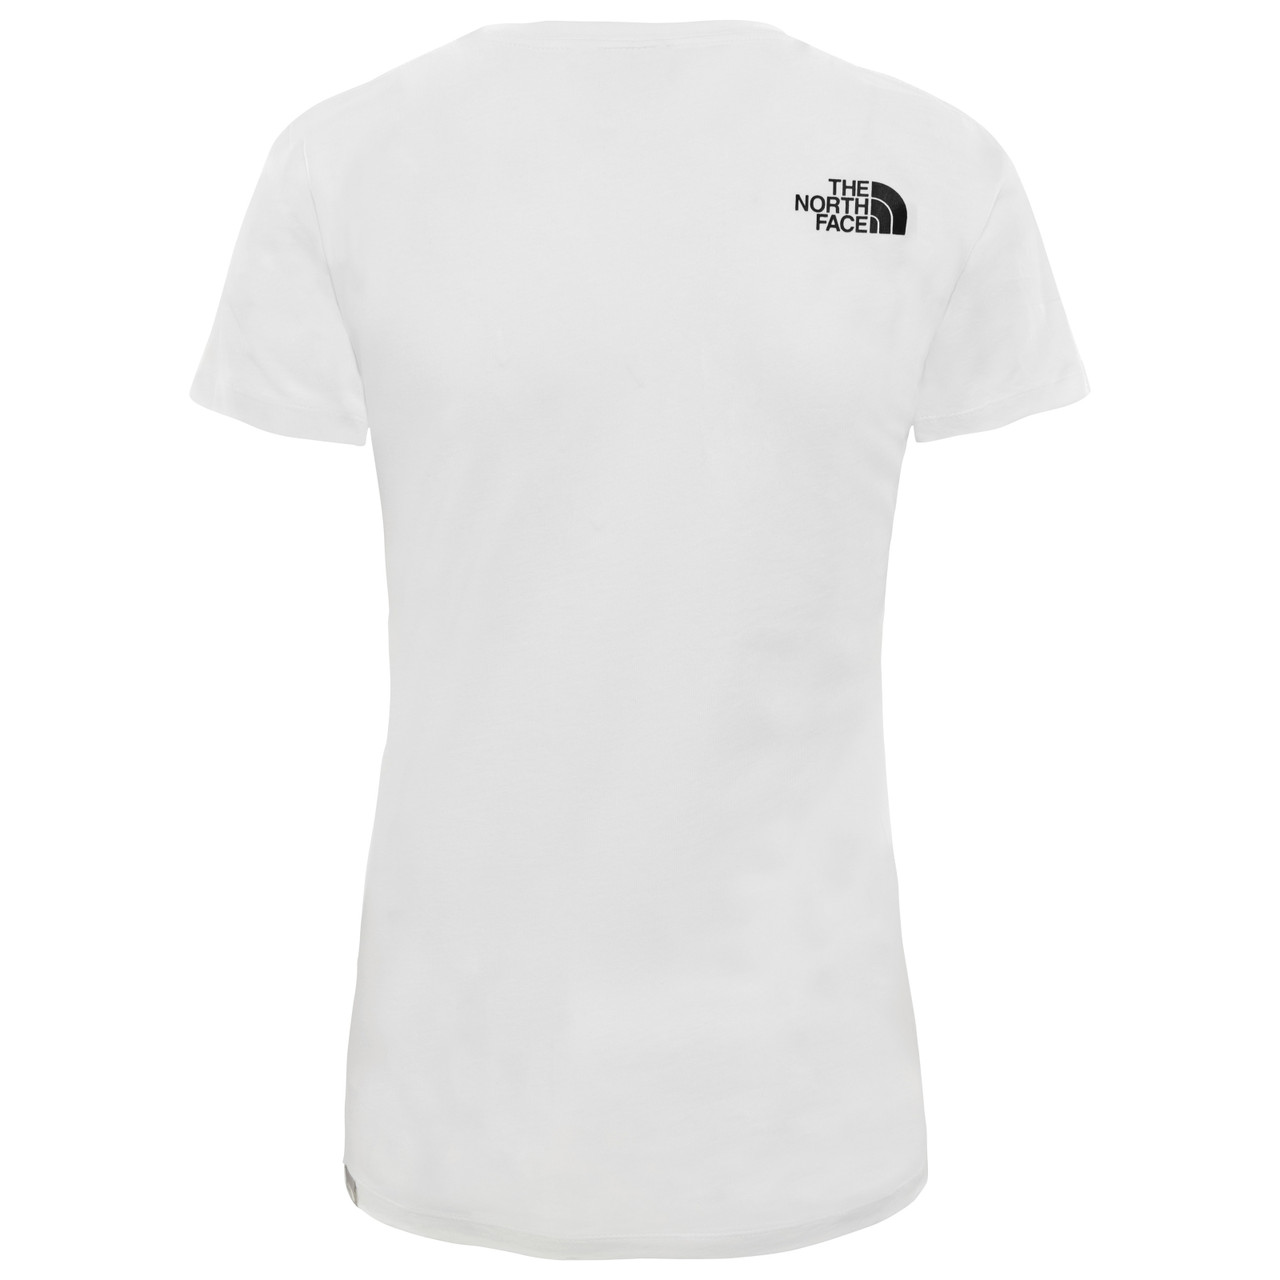 The North Face Easy Tee Women's S/S @ https://www.mountainmailorder.co.za/